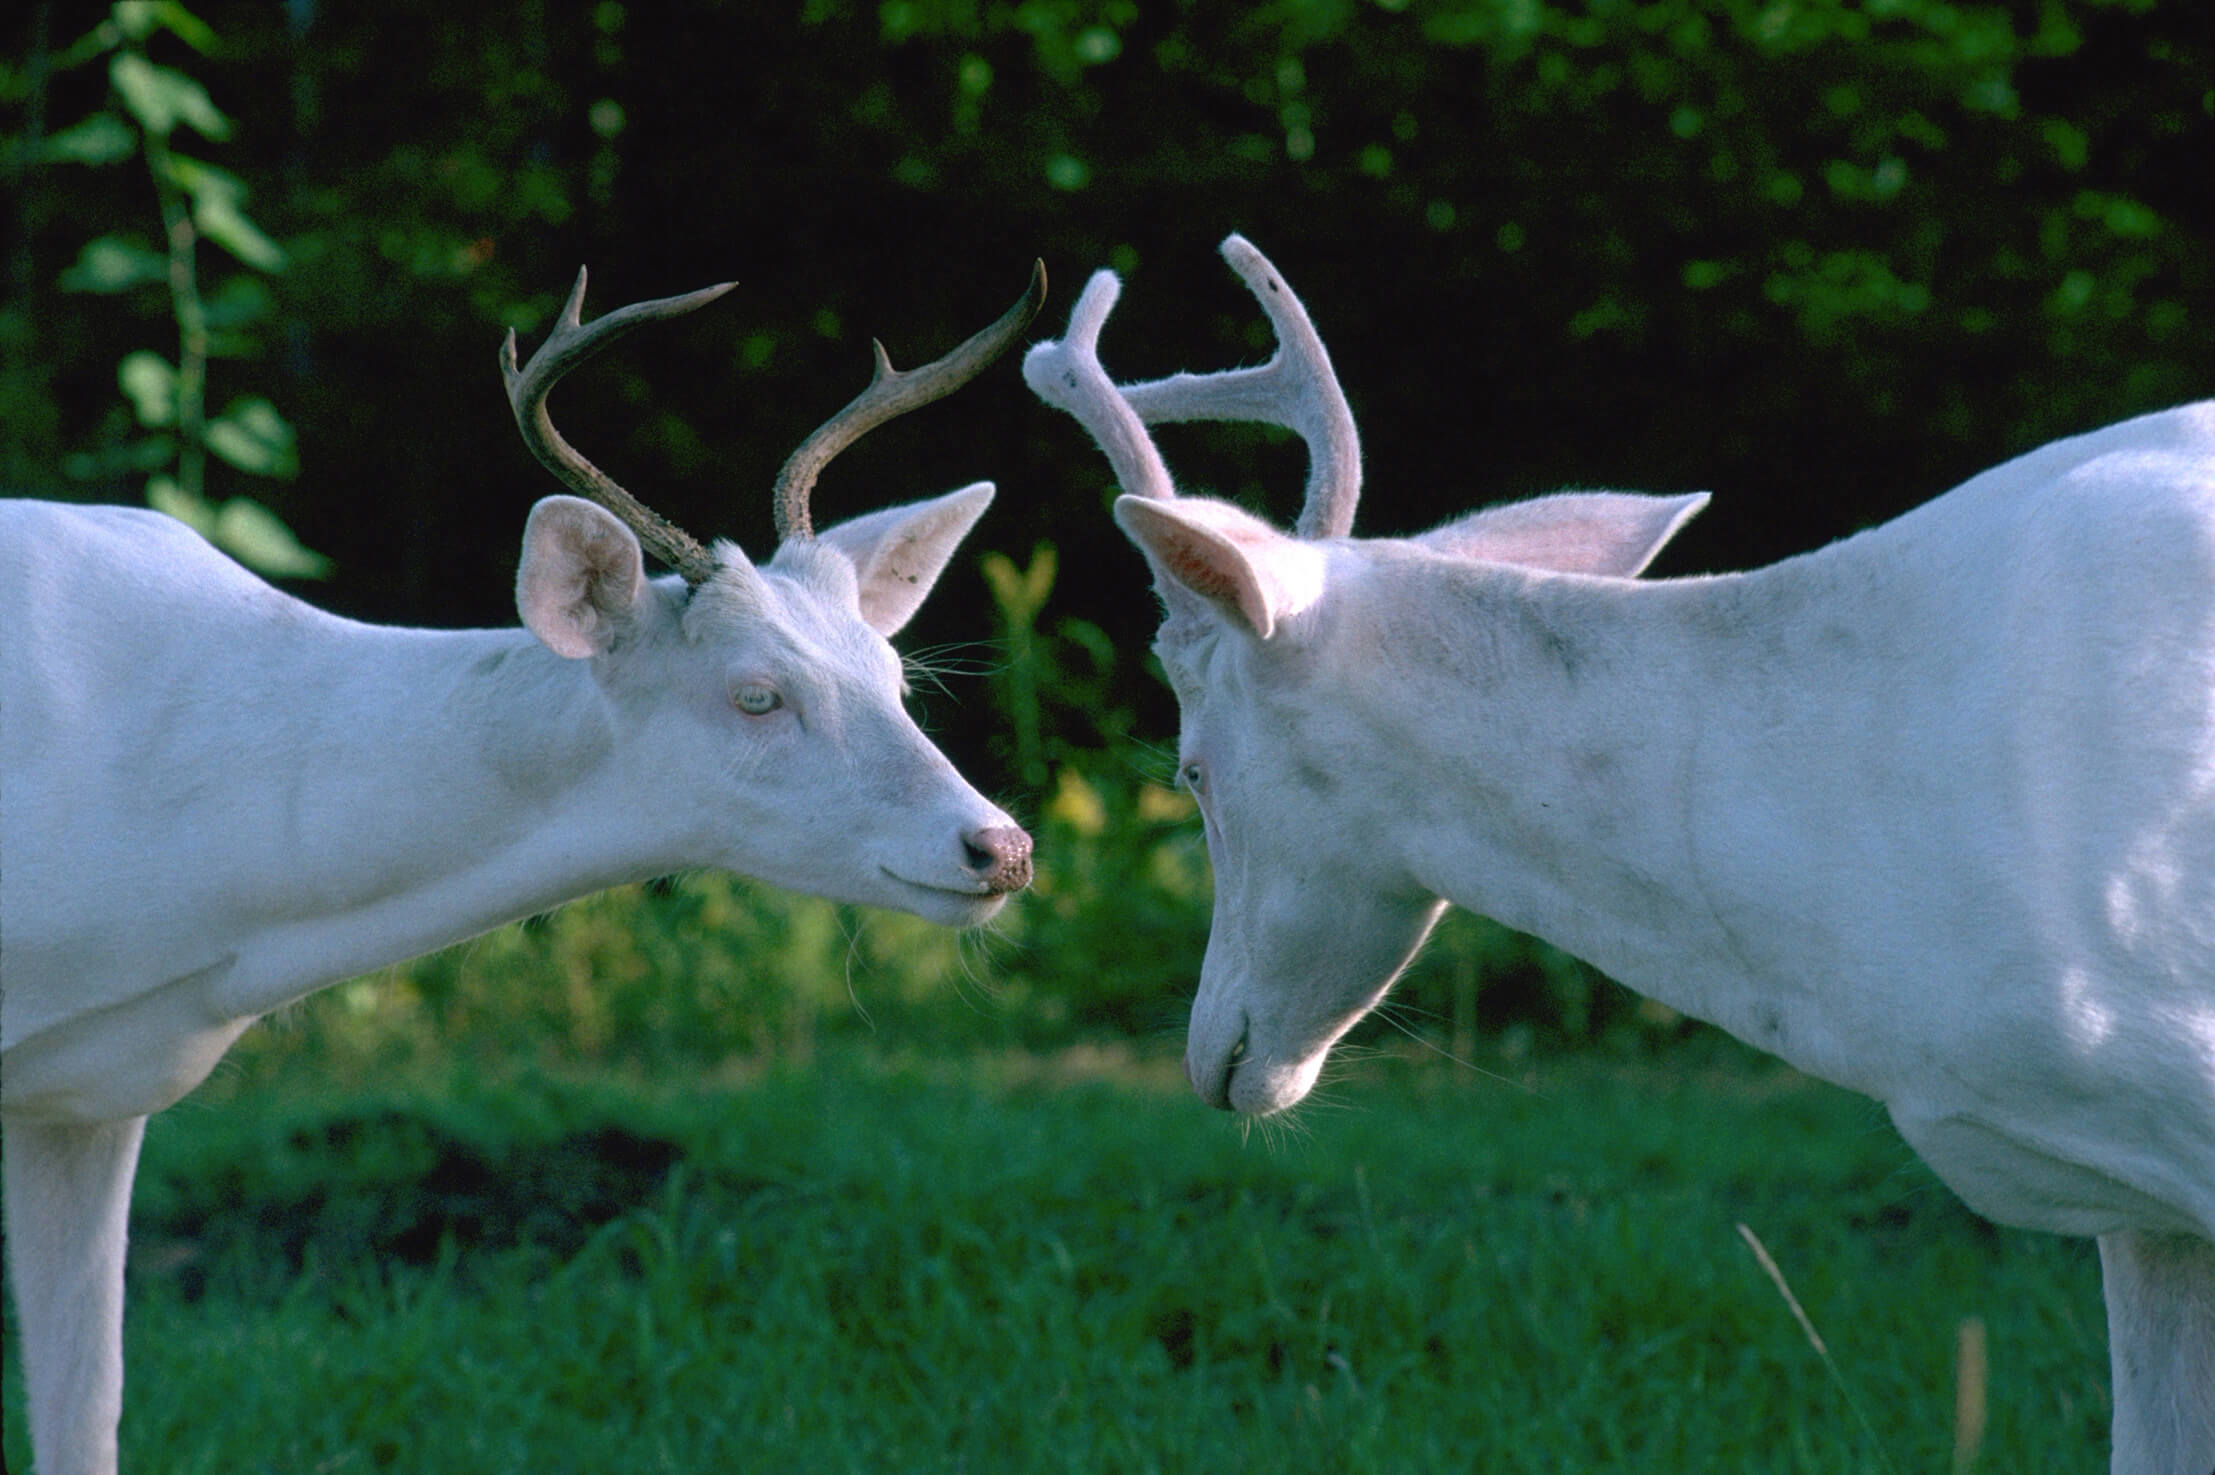 Twin Albino whitetail bucks compare antlers, one of which still has velvet covering